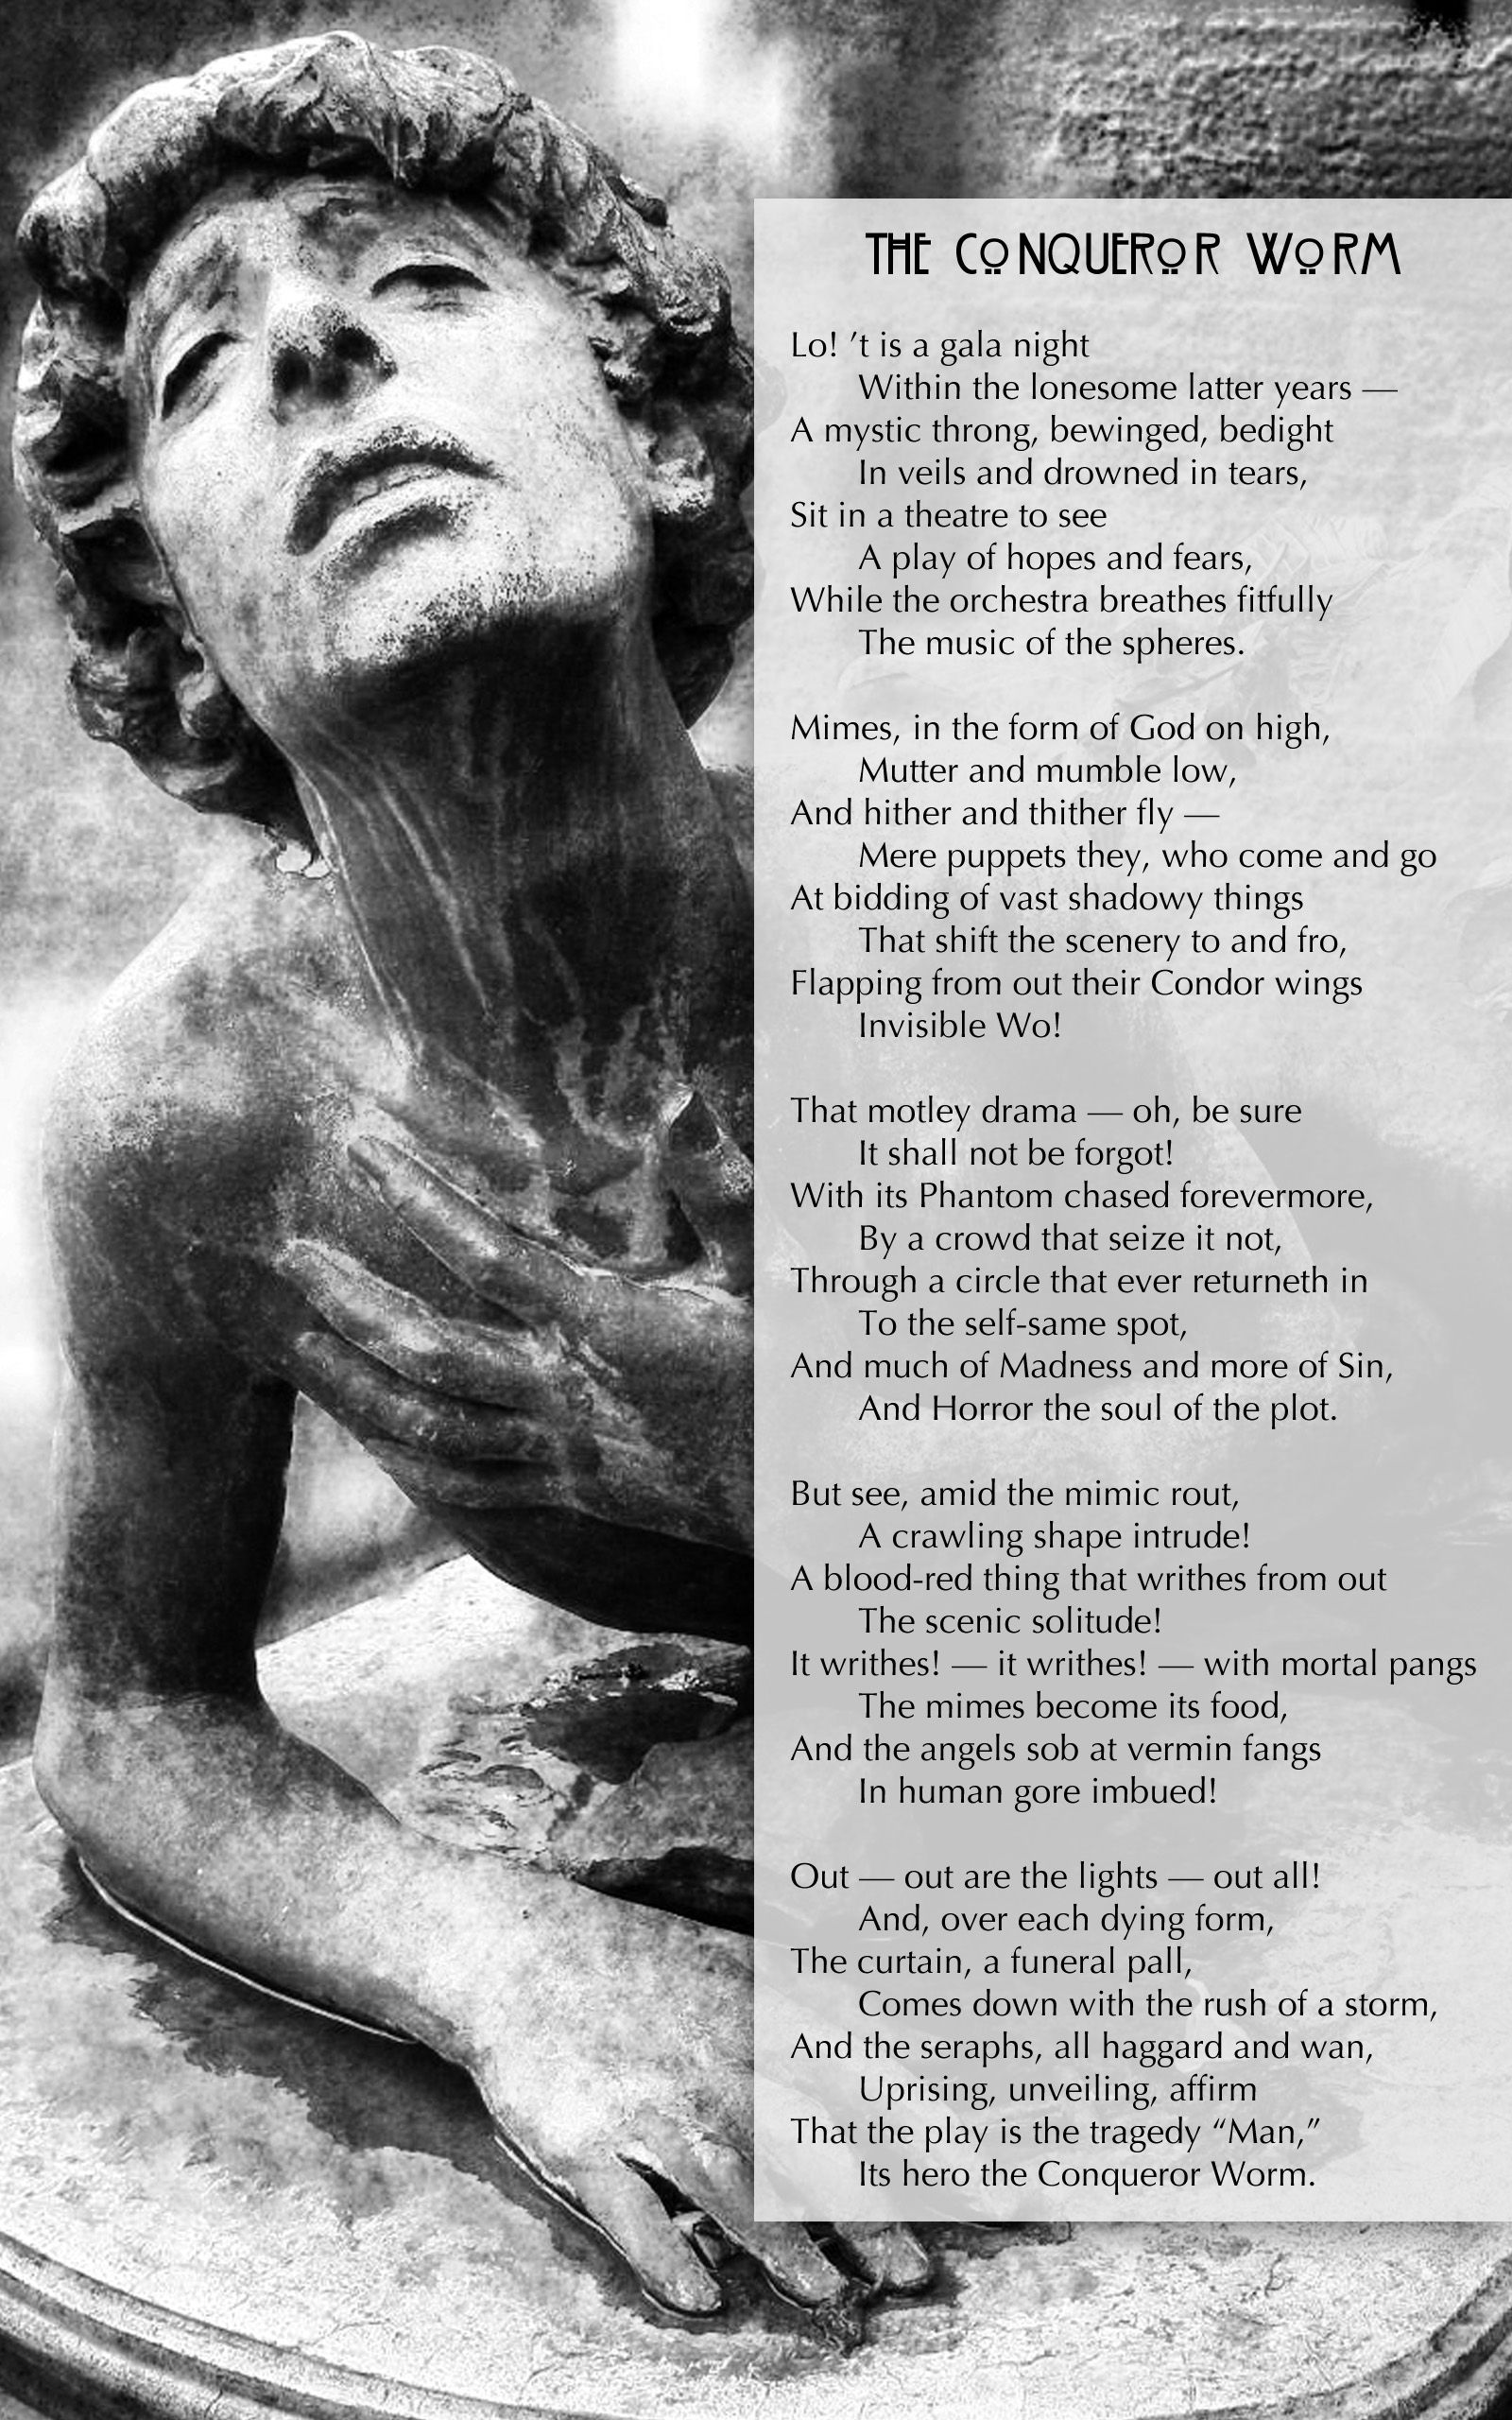 The Conqueror Worm By Edgar Allen Poe Is My Absolutely Favorite Gothic Poem